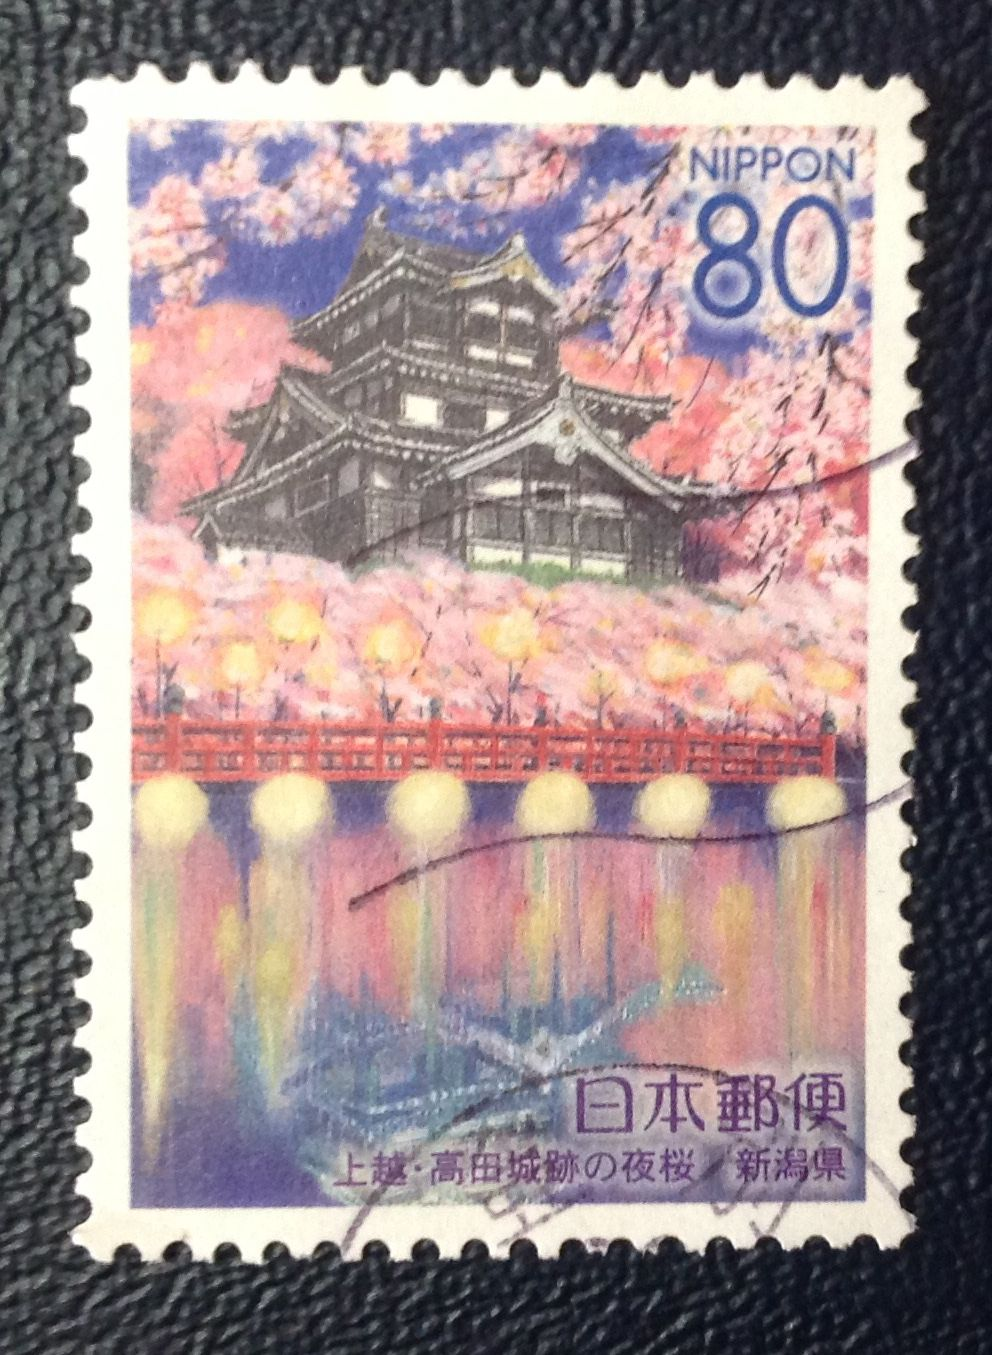 1Pcs/Set 2001 Japan Post Stamps Cherry Blossom In The Night Niigata Used Post Marked Postage Stamps for Collecting R472(China)